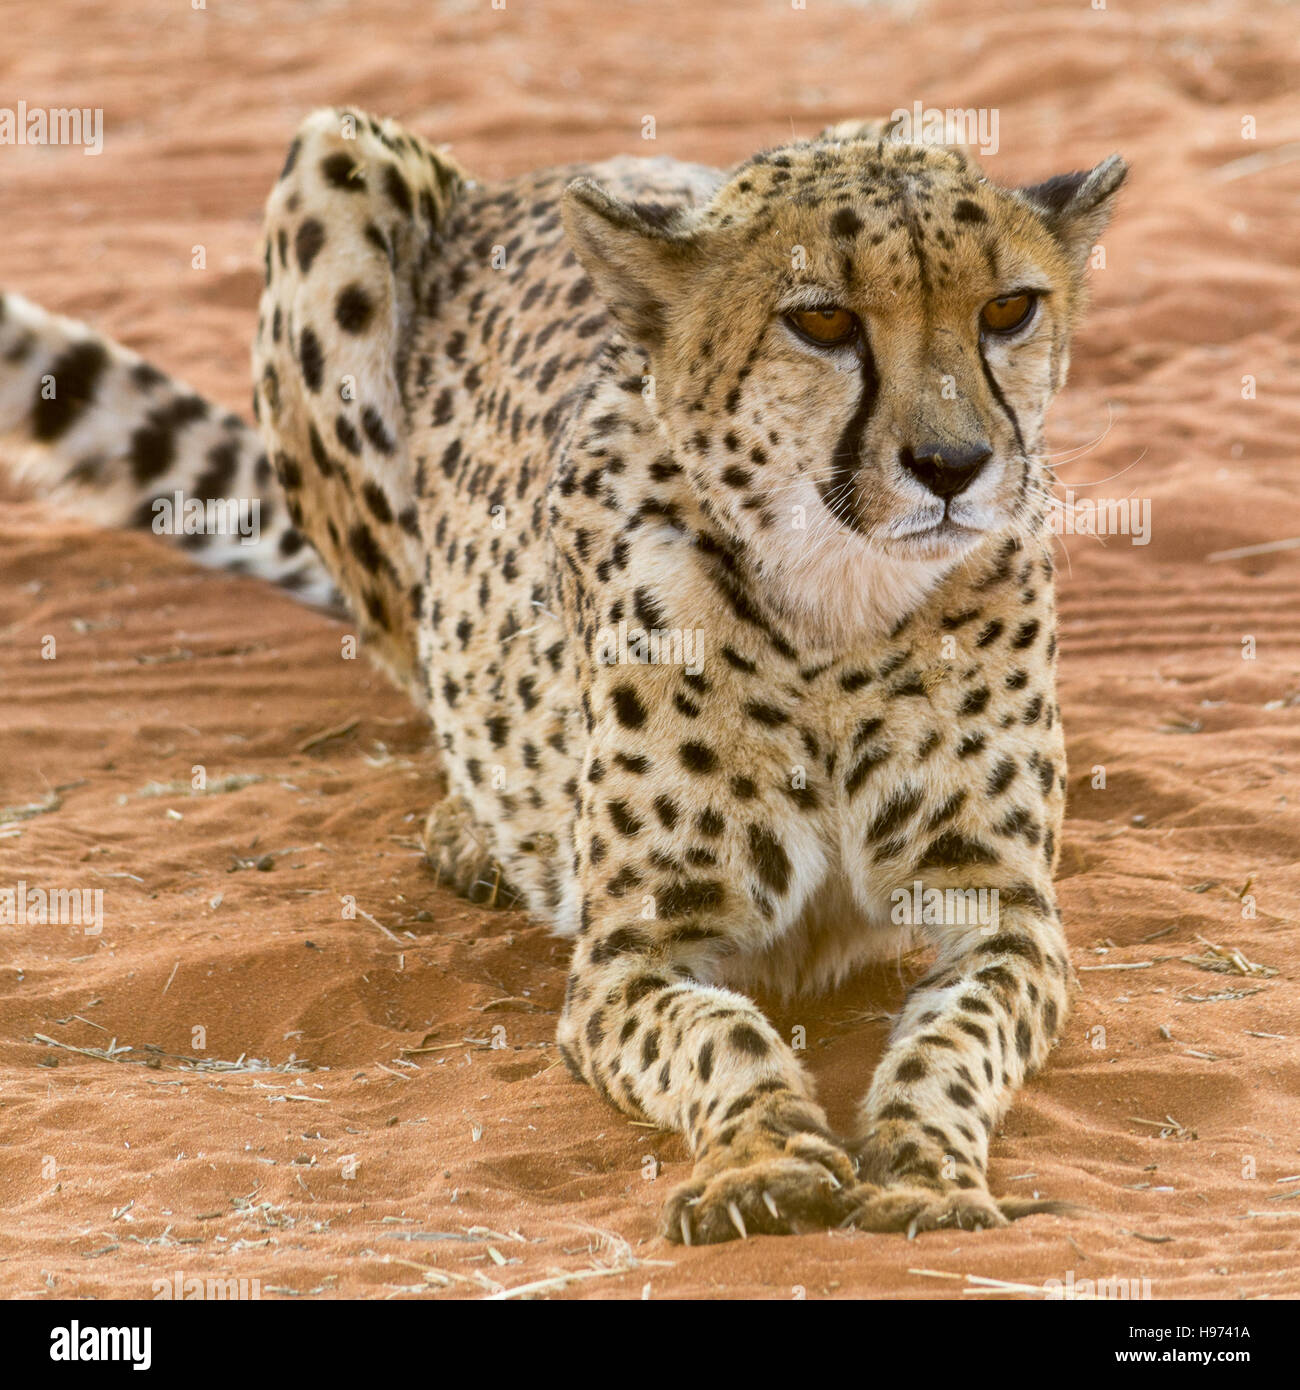 portrait of a cheetah, lying in red sand, seen in namibia, africa. - Stock Image